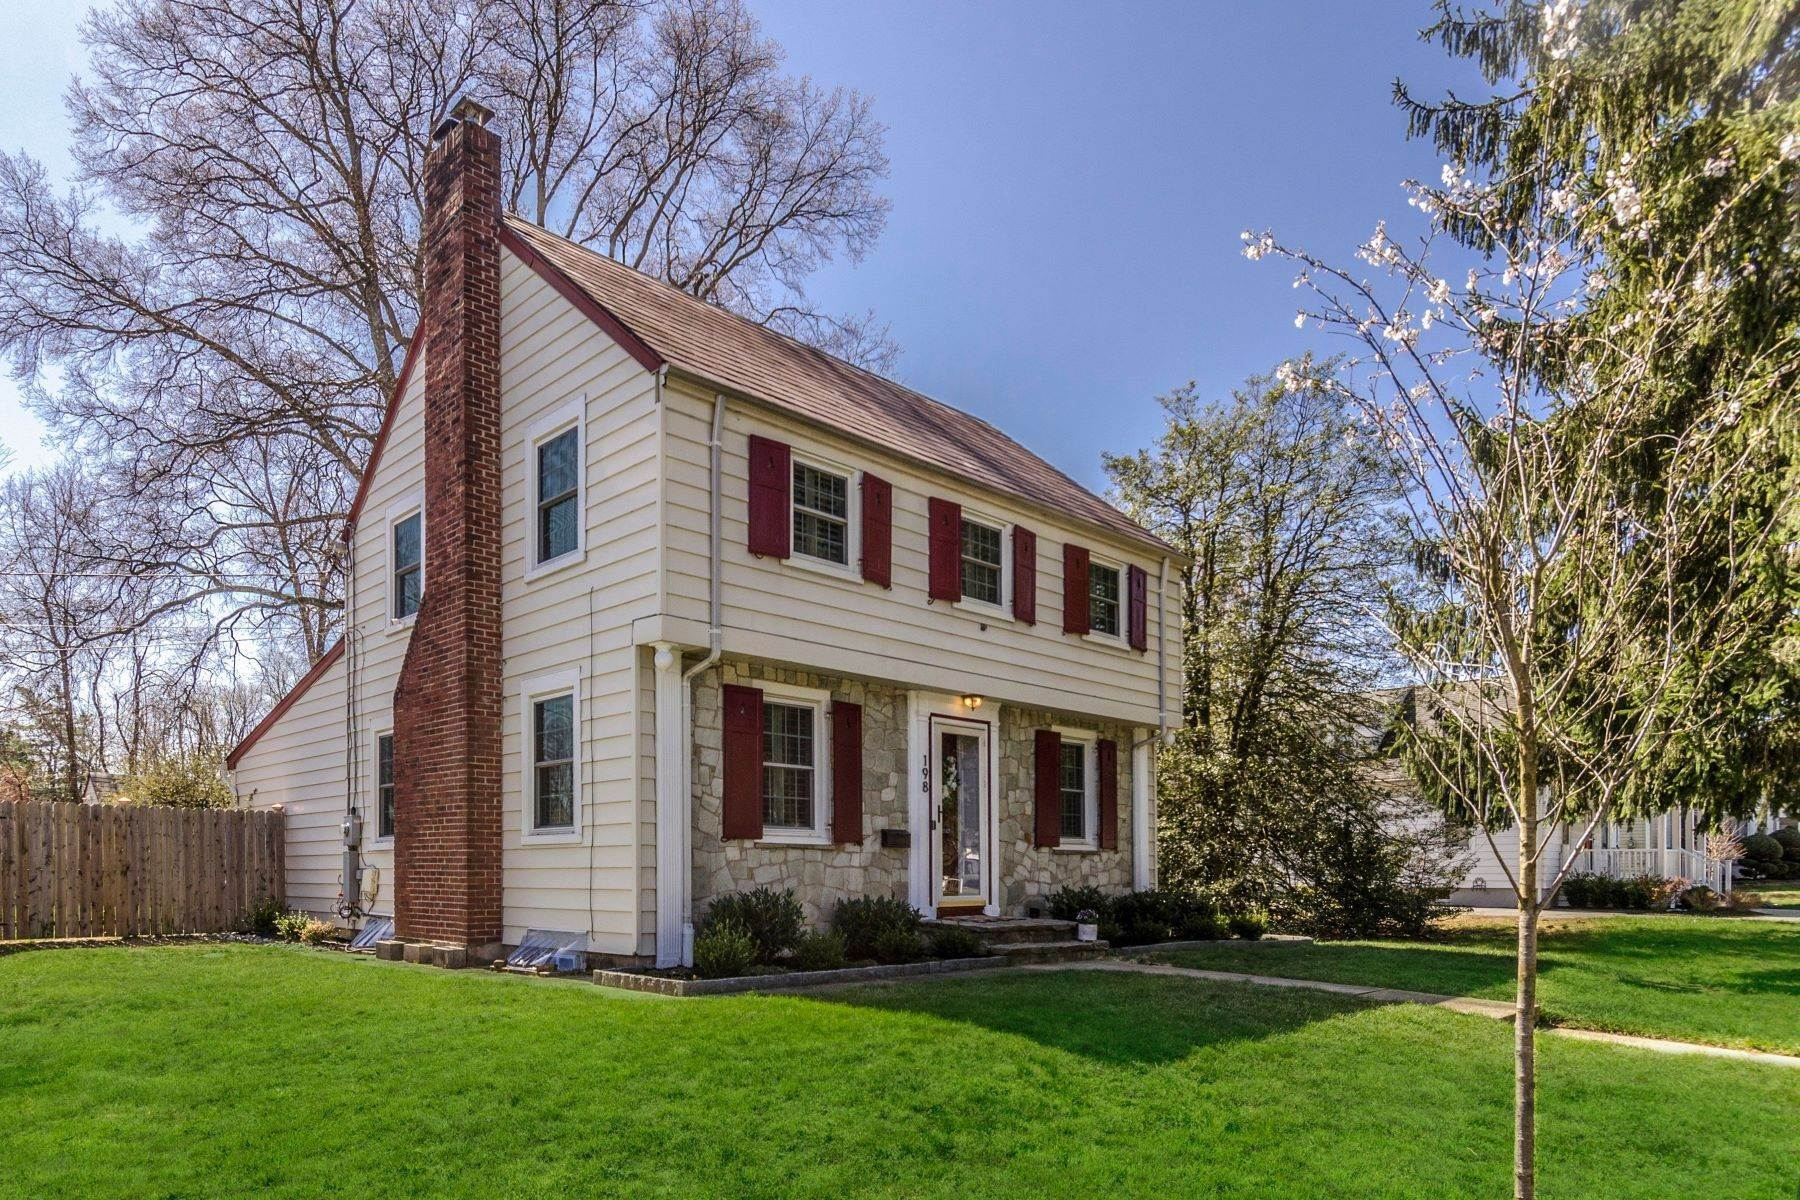 Single Family Homes for Sale at Charm of the Past Meets Modern Day Amenities 198 Park Avenue Hamilton, New Jersey 08690 United States